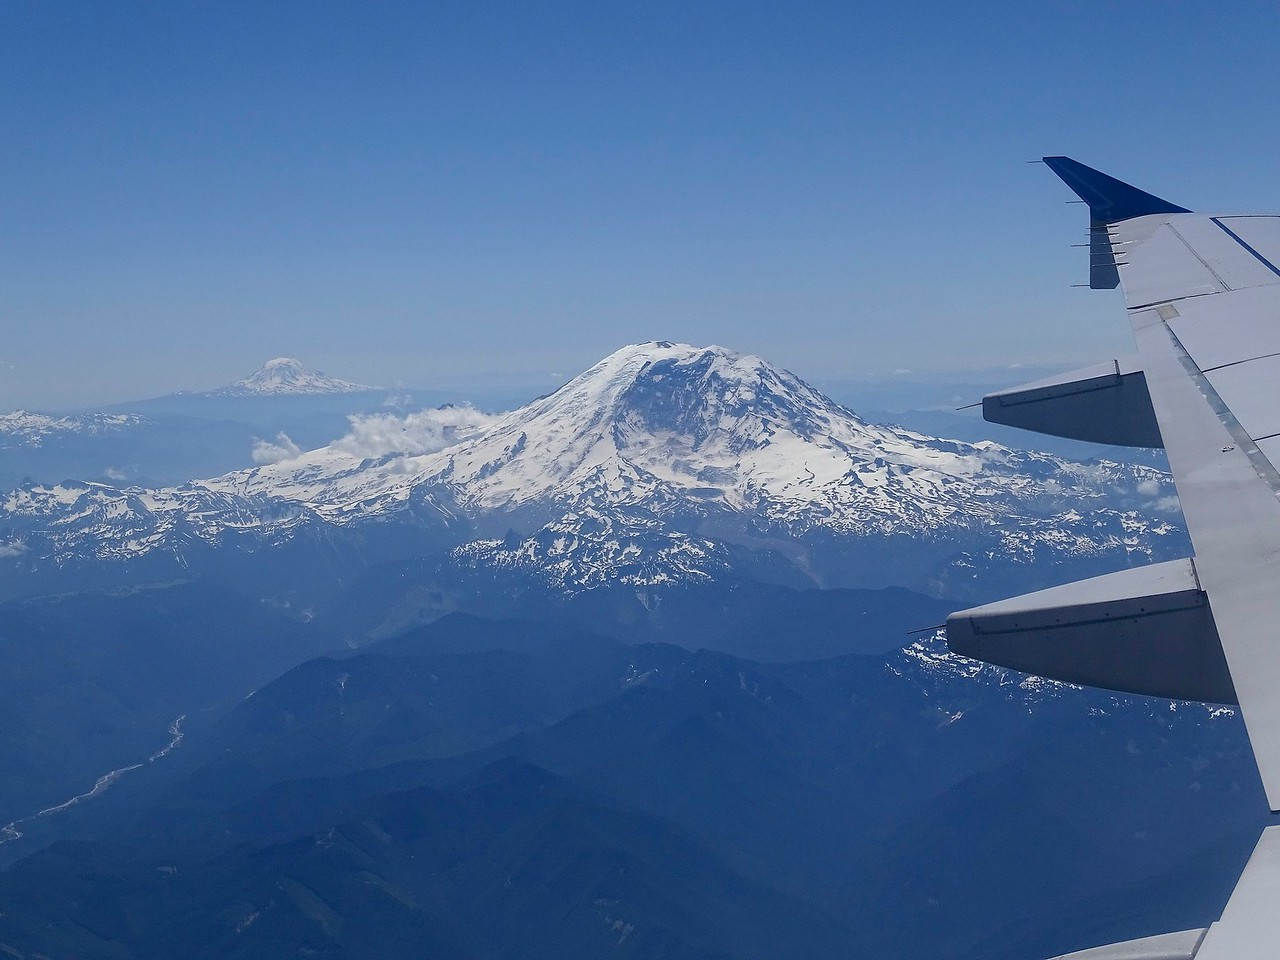 Seeing Mt Ranier (and Mt Adams to the left) from the plane window is always a thrill.